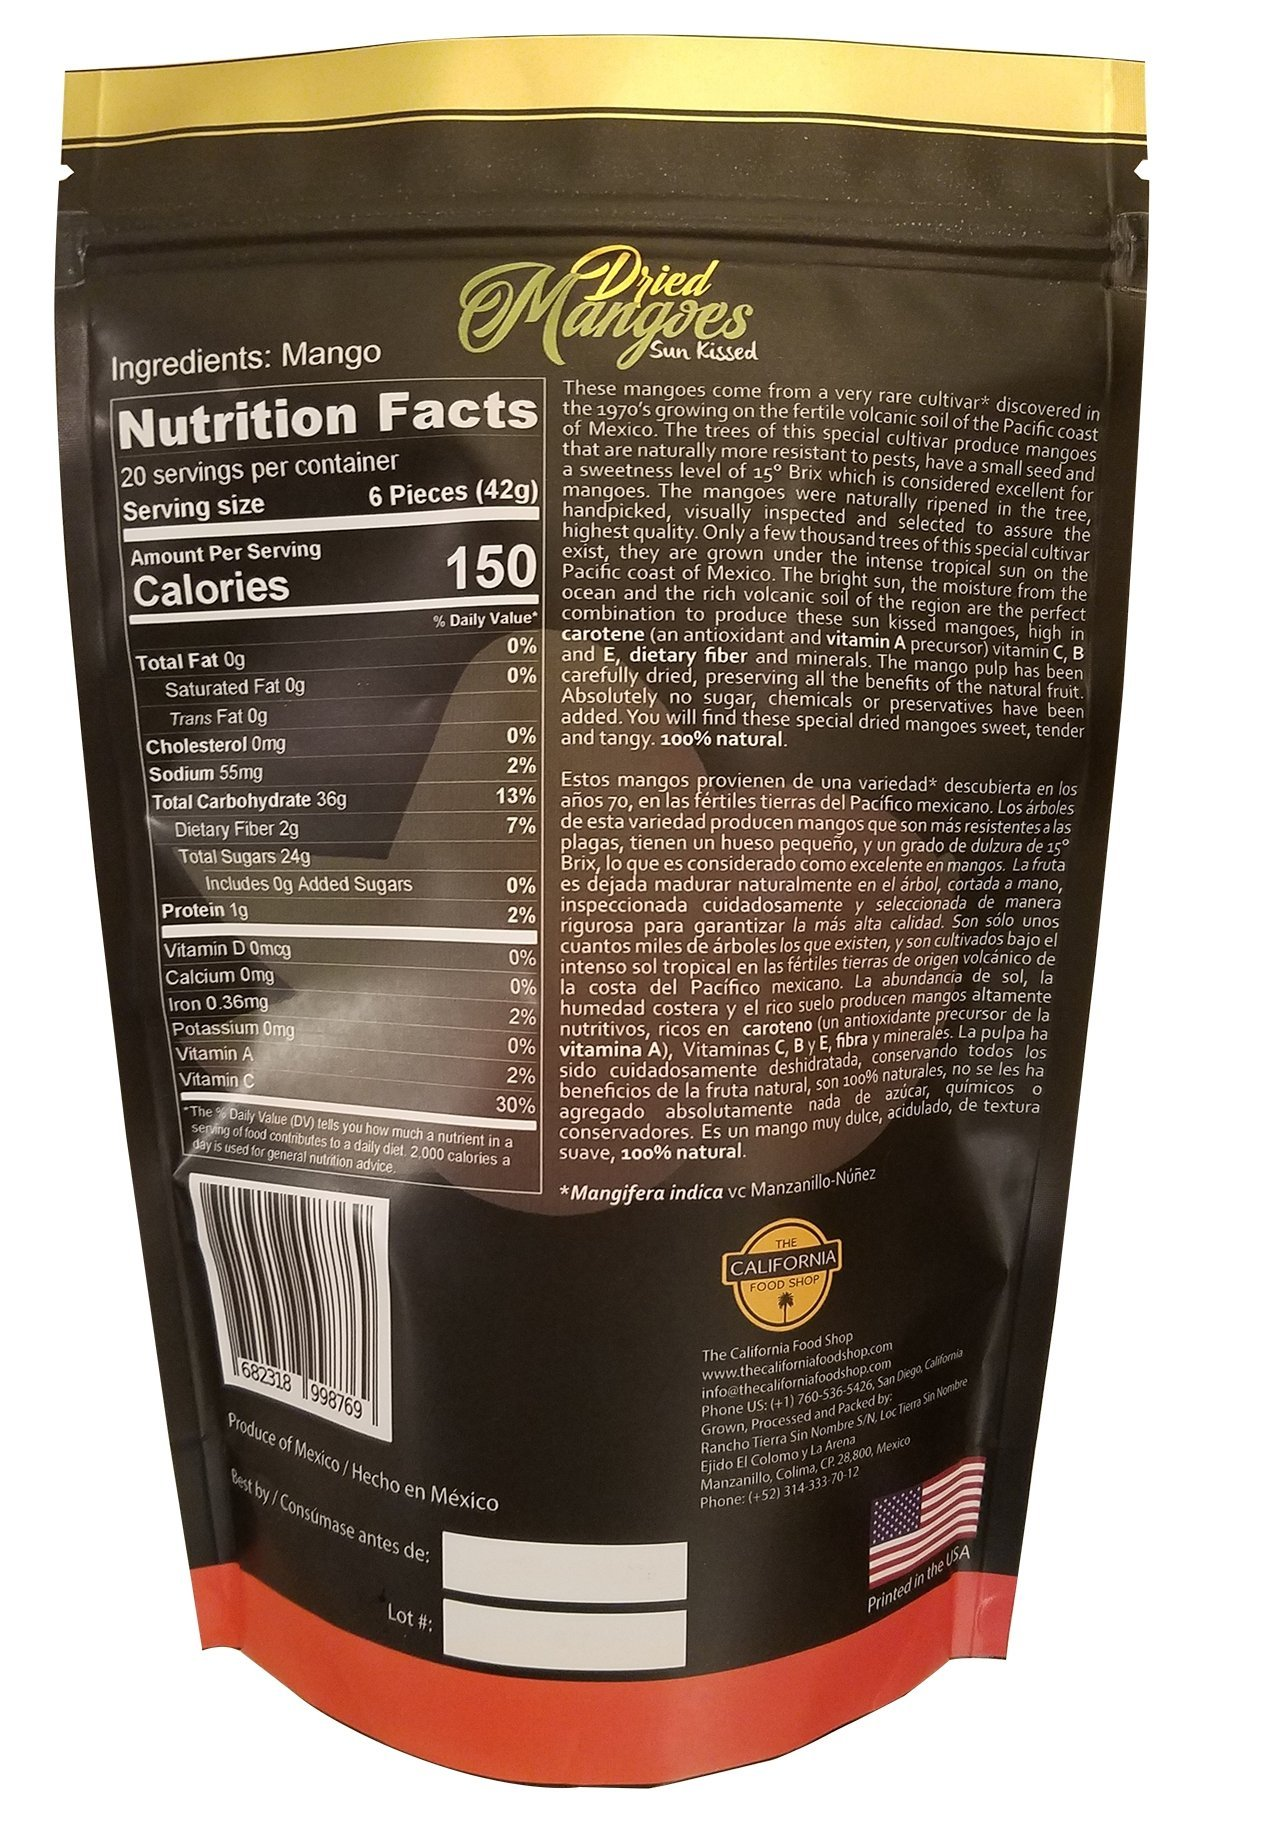 The California Food Shop All Natural Unsweetened Dried Mangoes 30 oz (850 gr)Pack Tropical Dried Mango Fruits Healthy and Delicious Snack No Added Sugar or Chemicals by The California Food Shop (Image #2)